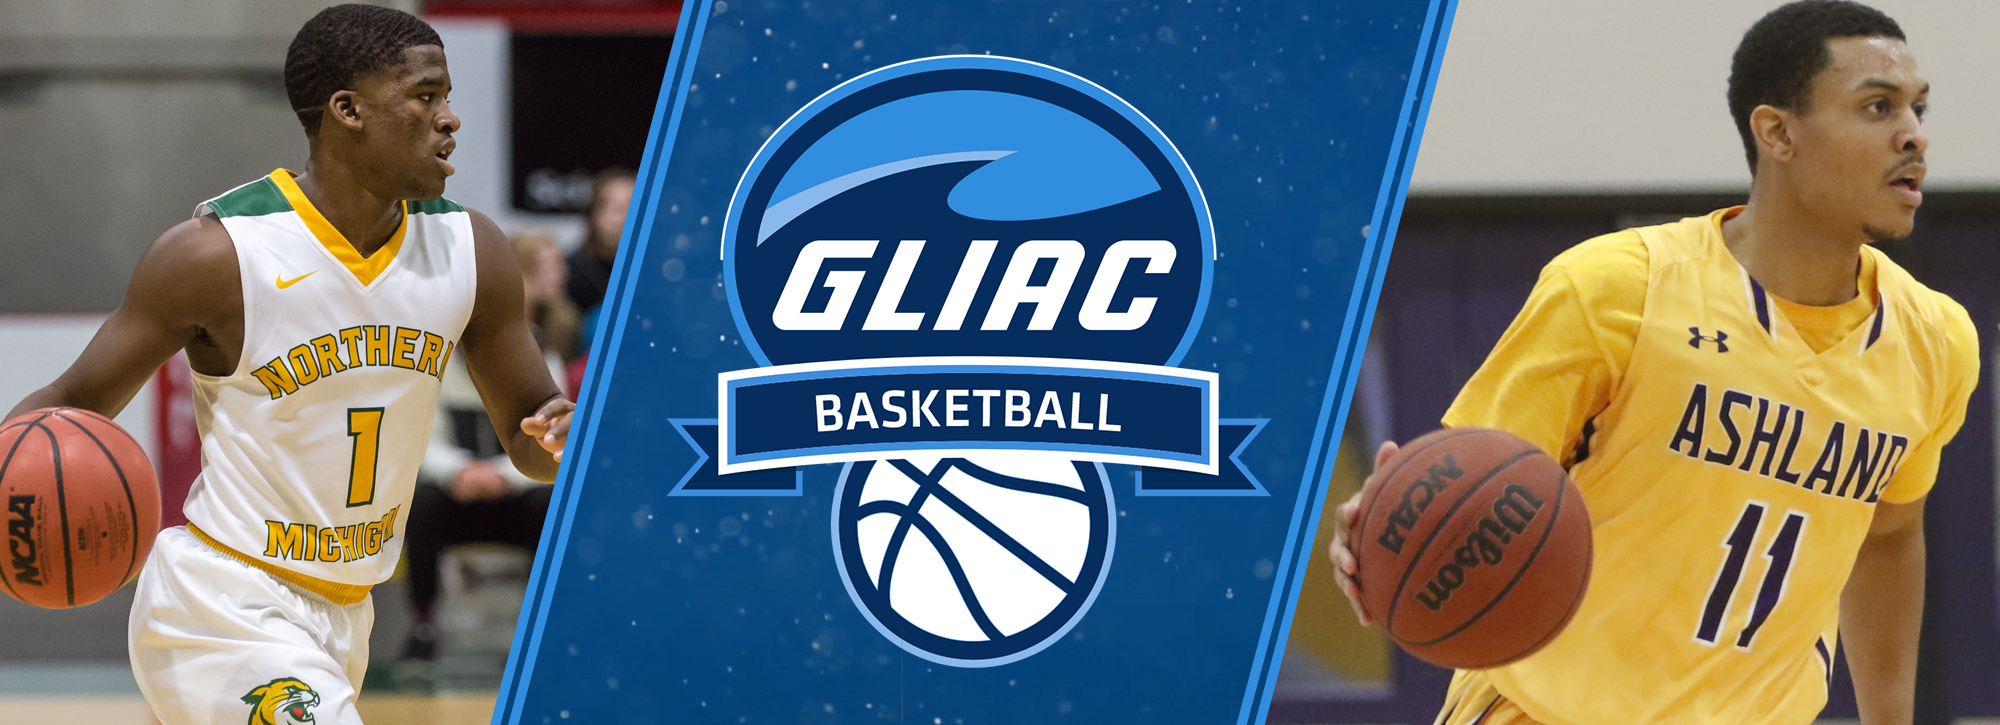 NMU's Echols and Ashland's Caldwell are named GLIAC Players of the Week